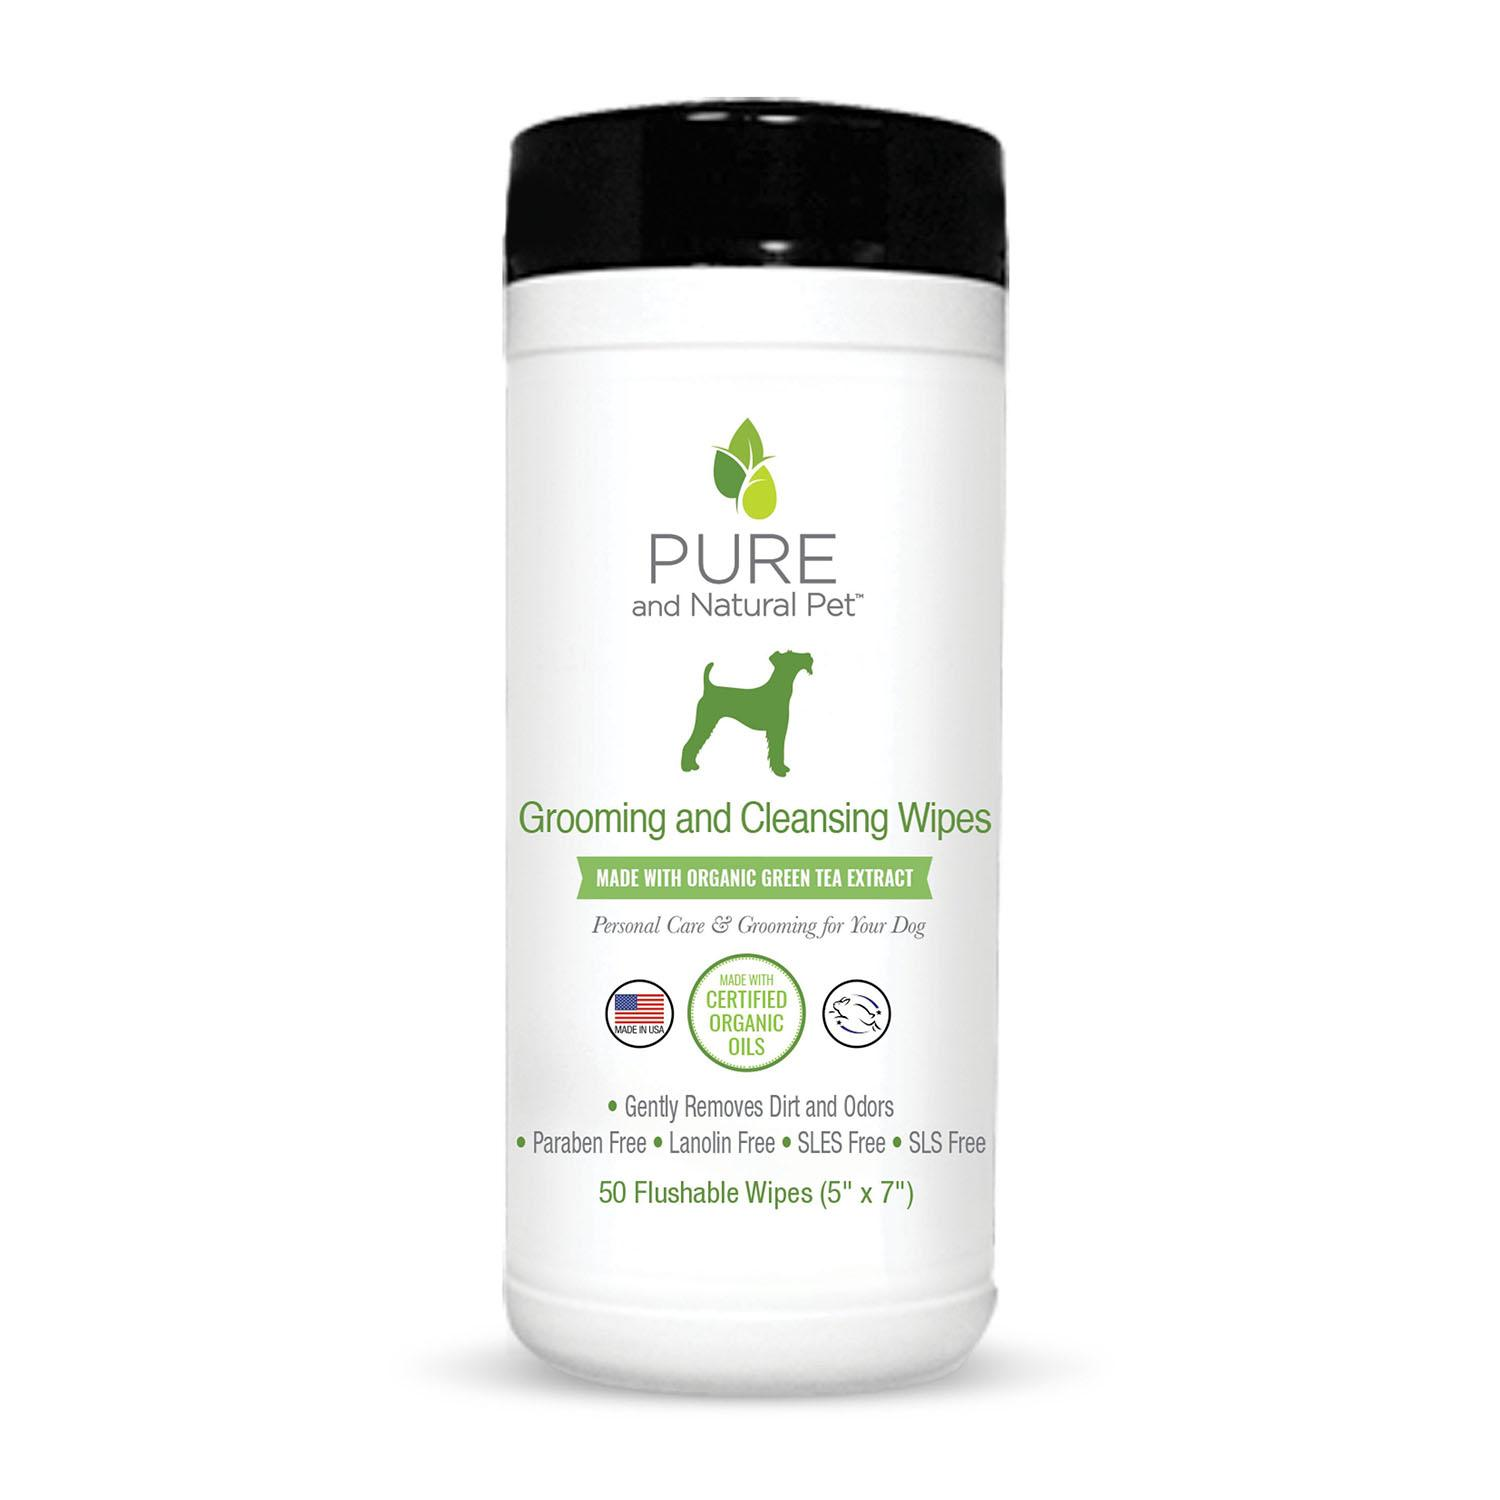 Pure and Natural Pet Grooming and Cleansing Wipes for Dogs - Green Tea